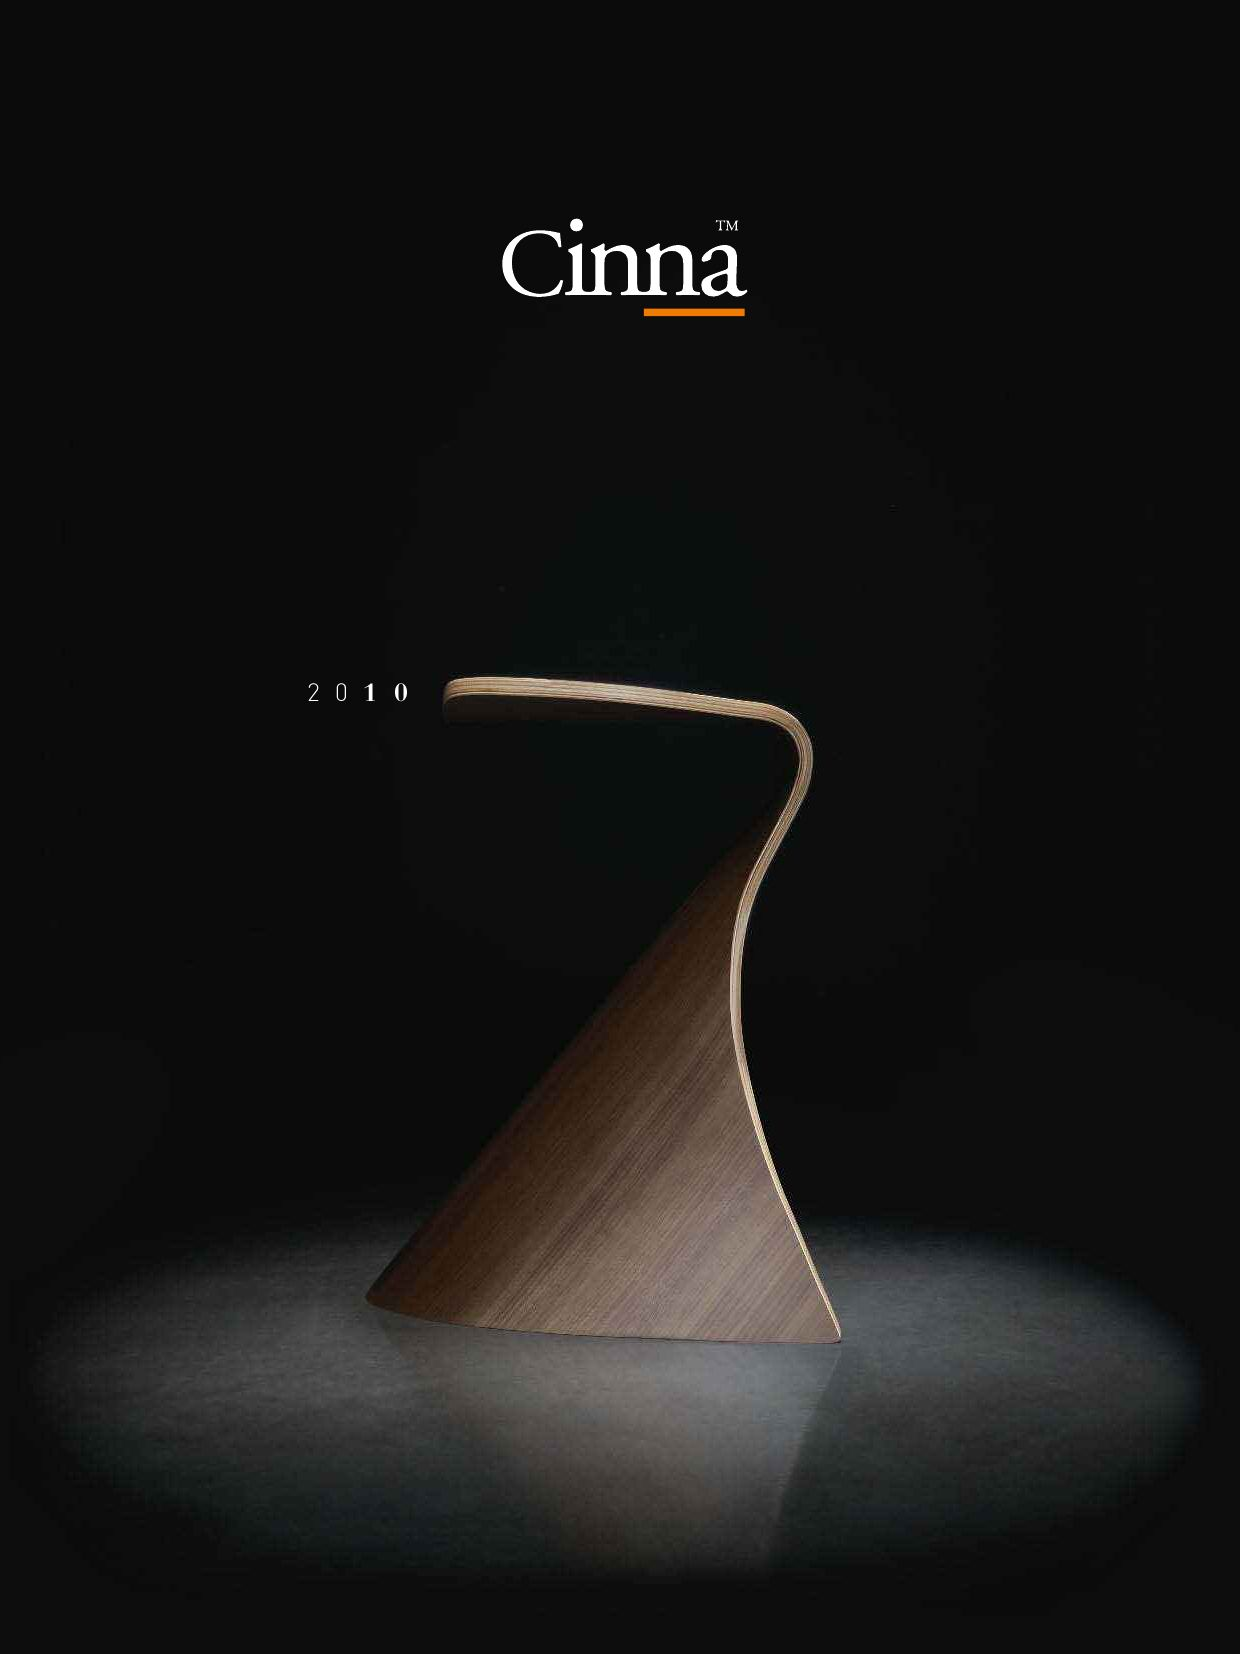 Meubles Cinna Prix Catalogue Cinna 2010 By Asv Mobilier Issuu